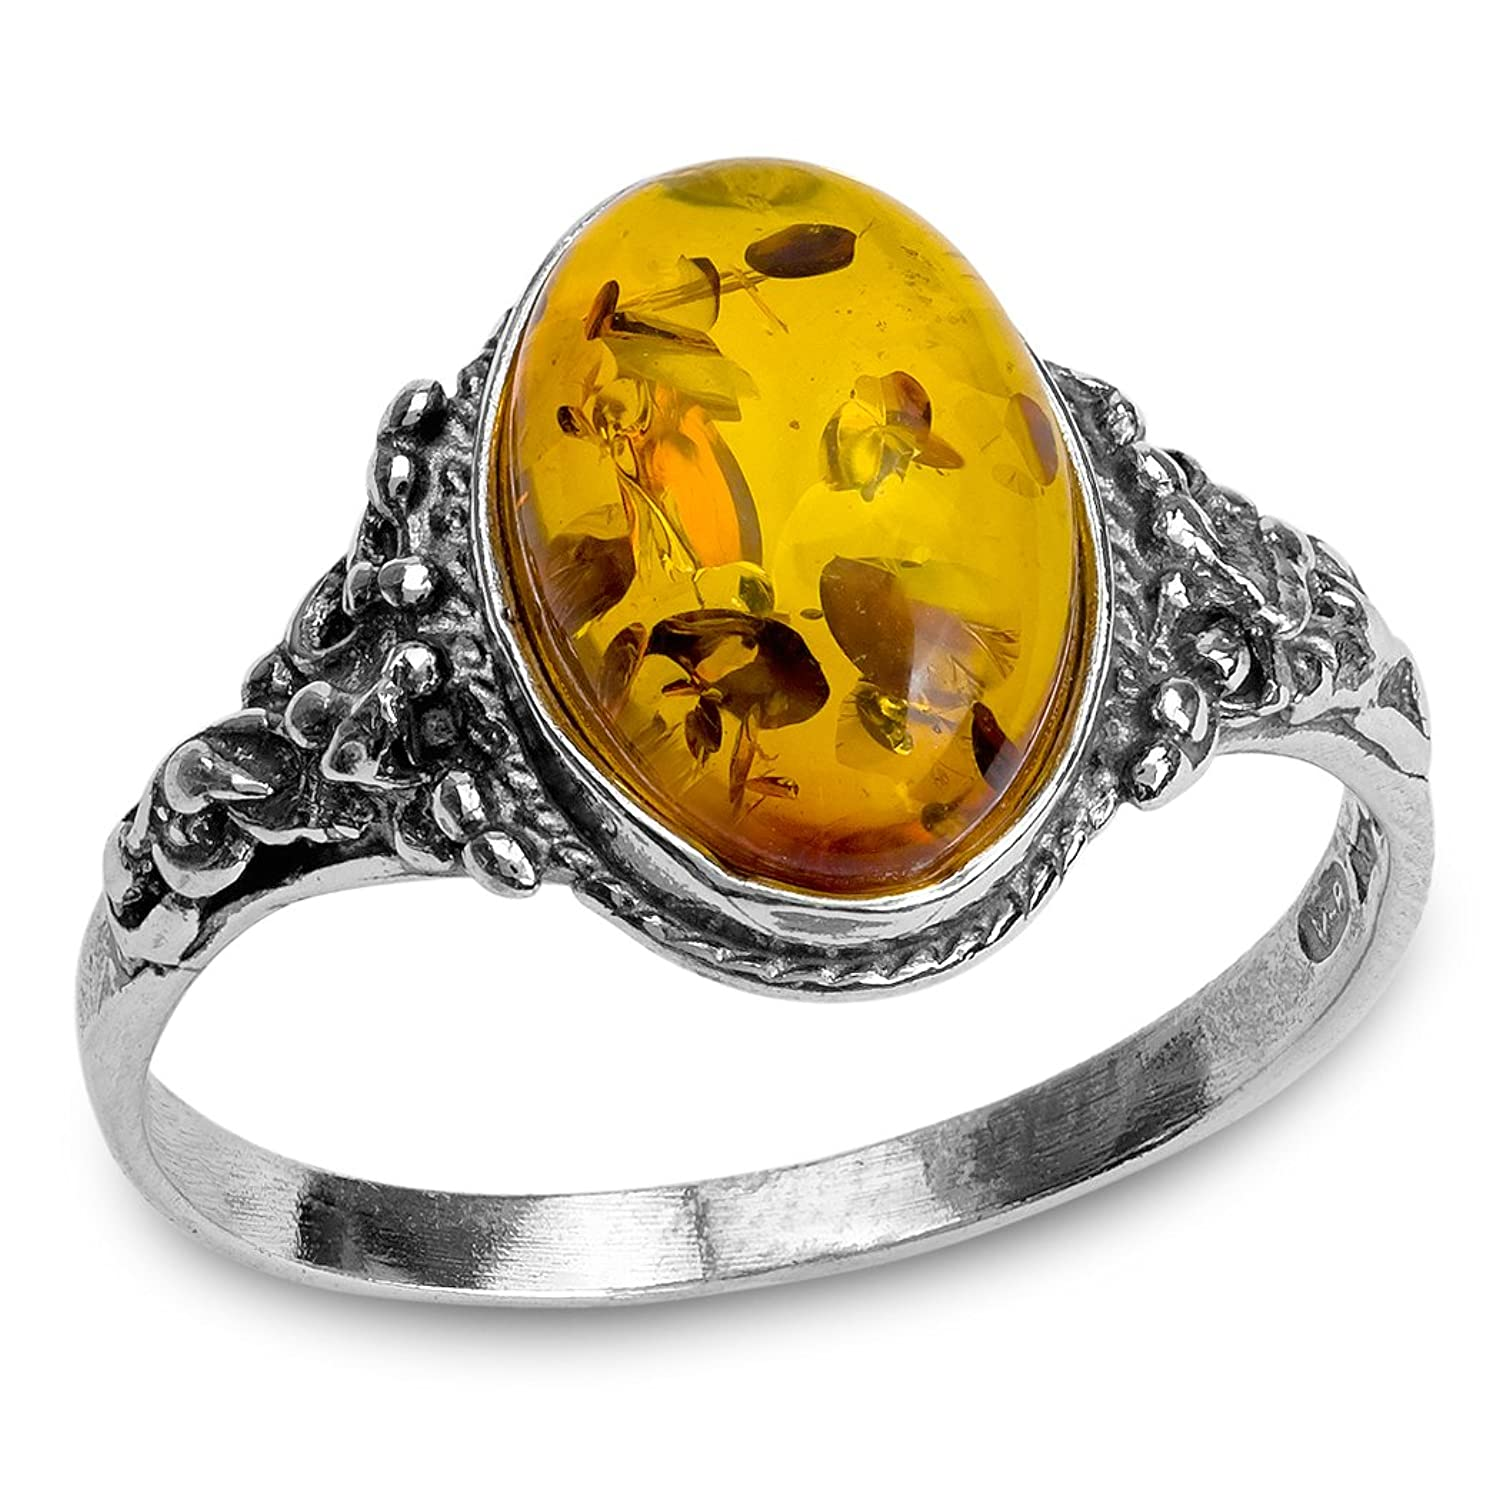 tone diamond certified fancy jewelry today cut engagement overstock e halo two free tdw yellow ring gold rings f watches product amber shipping round auriya